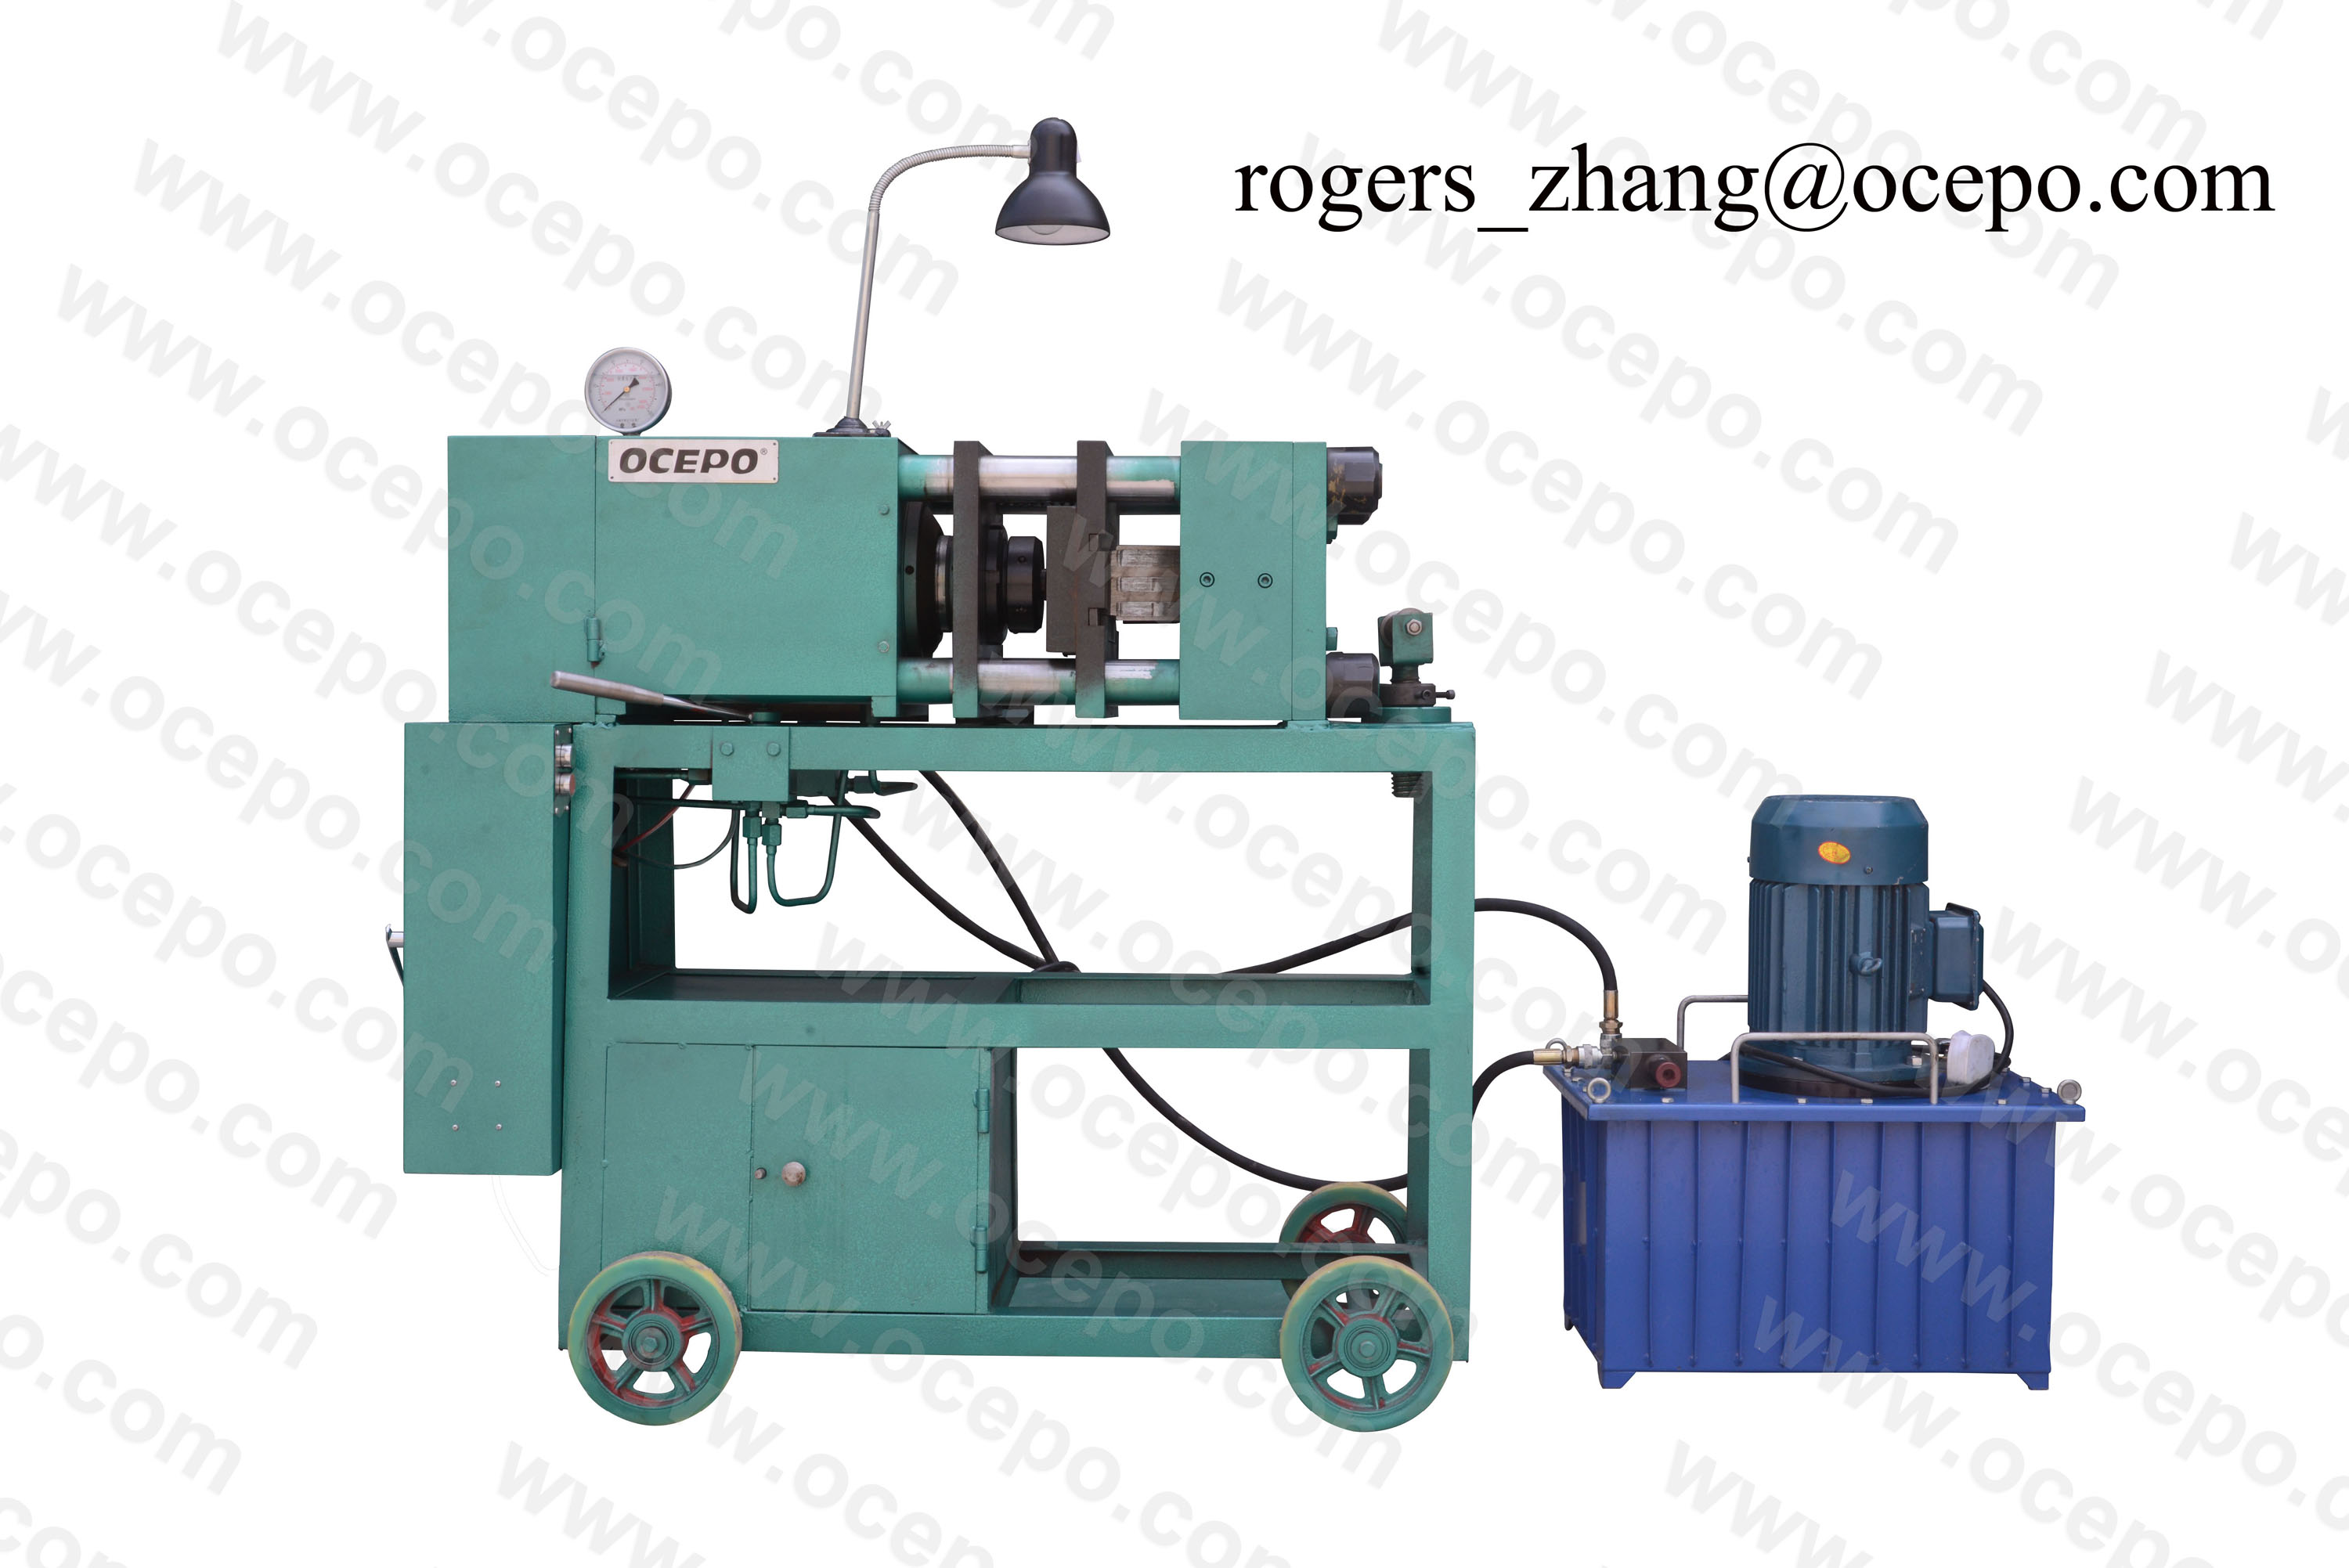 Rebar Upset Forging Machine,GZL-45 Rebar Thread Cutting Machine